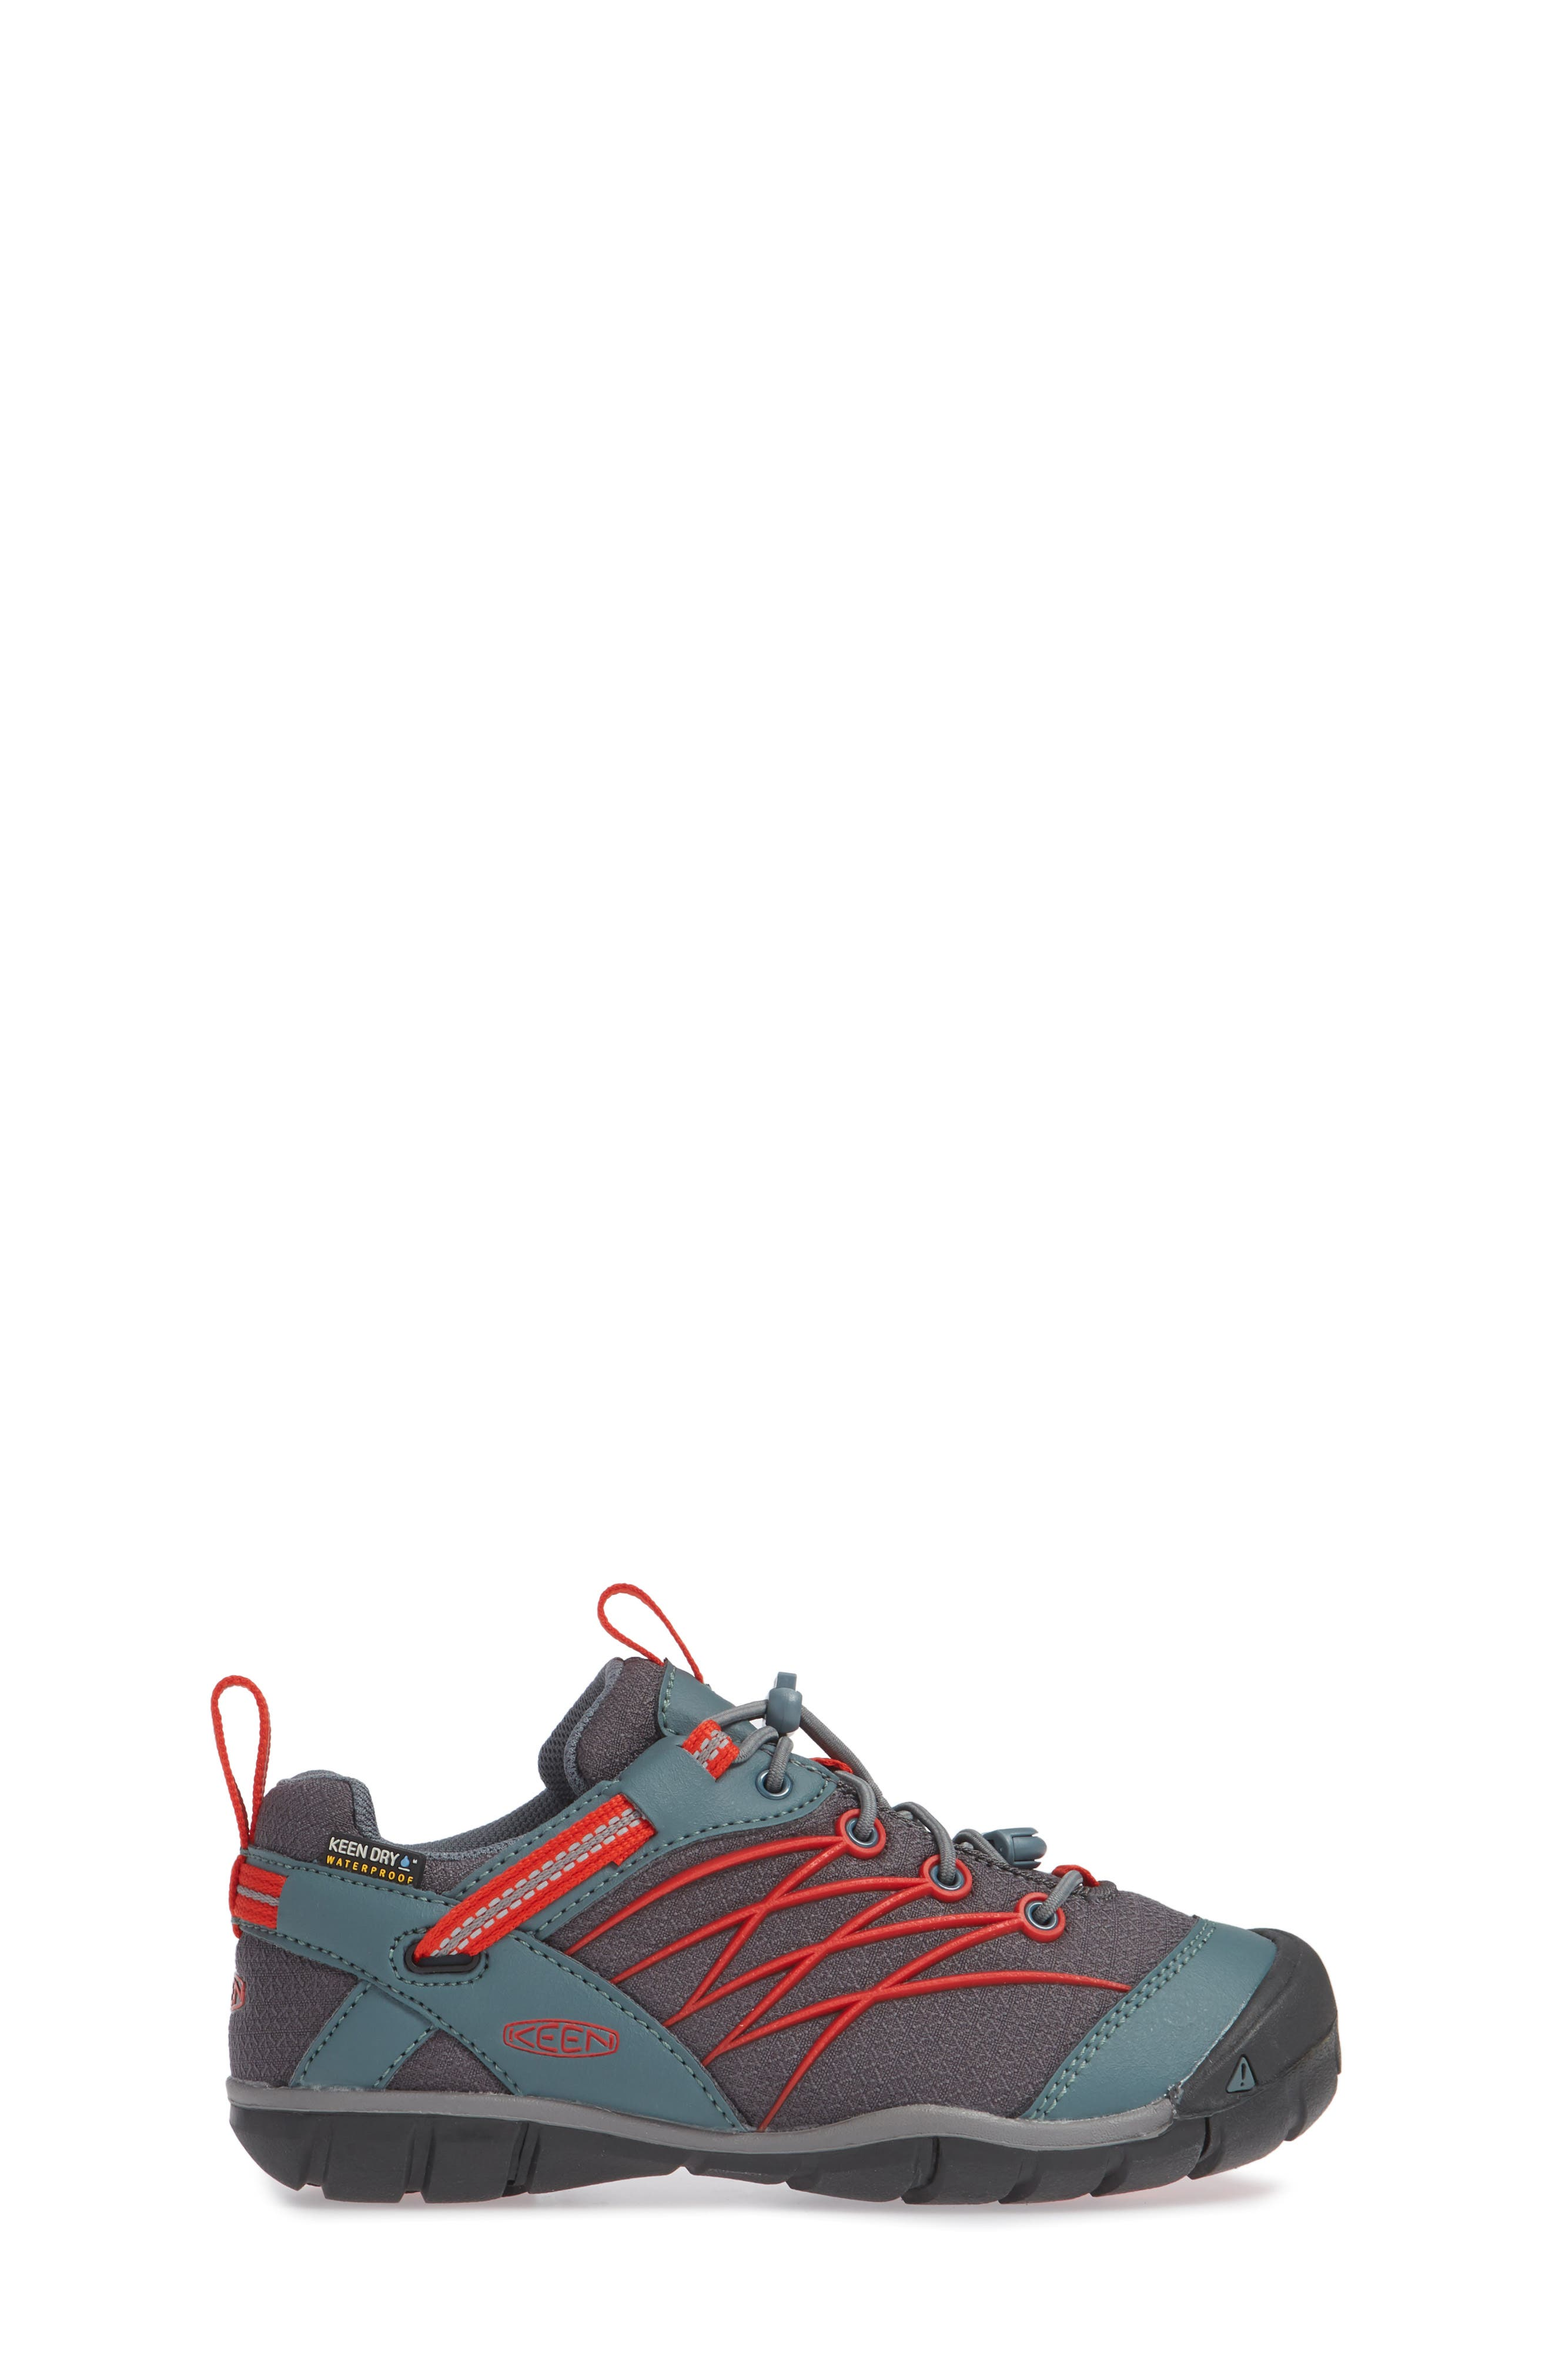 Chandler CNX Waterproof Sneaker,                             Alternate thumbnail 3, color,                             STORMY/ RED